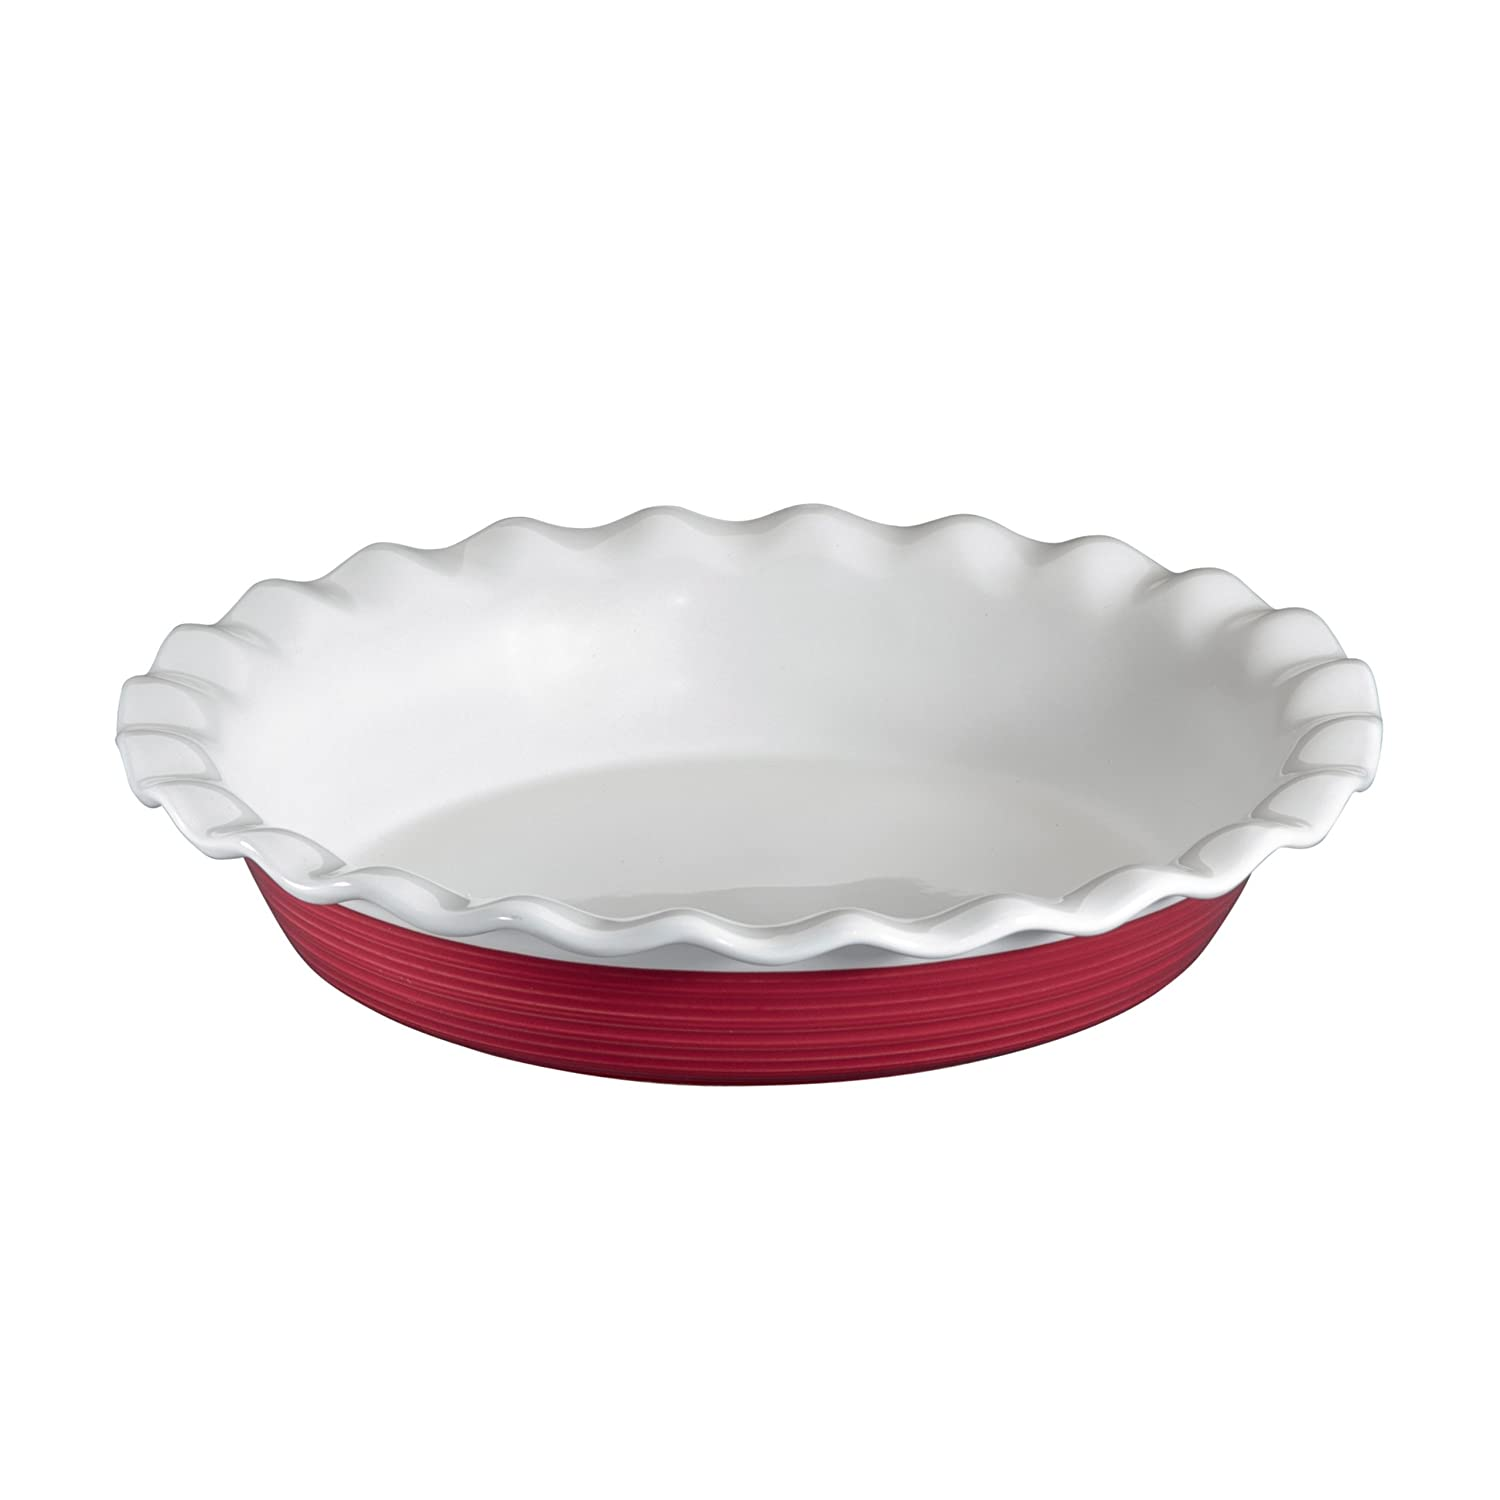 CorningWare Etch 9.5 Inch Pie Plate in Brick